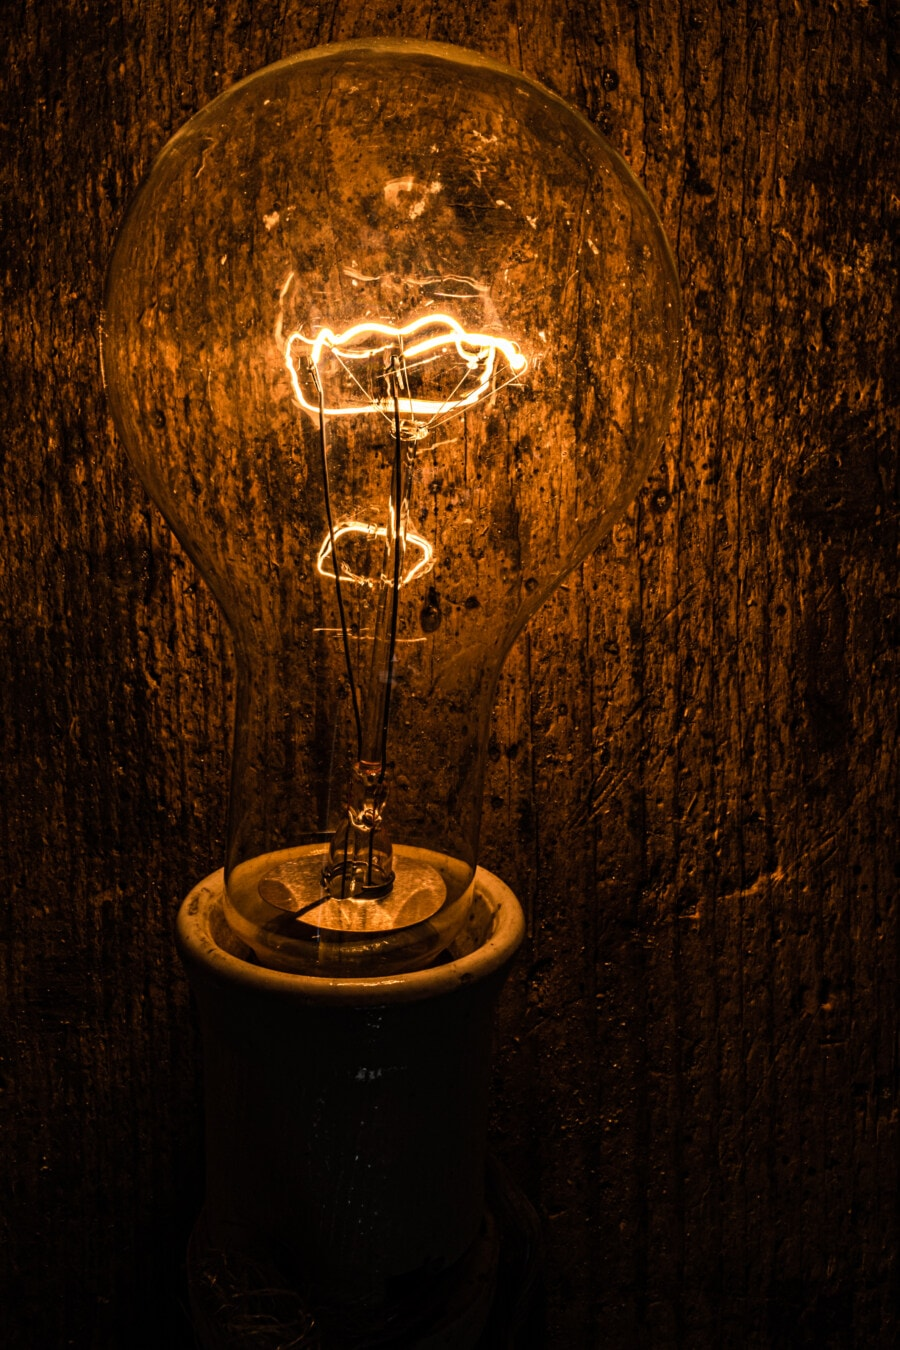 light bulb, filament, antiquity, luminescence, vintage, close-up, lamp, electricity, dark, old